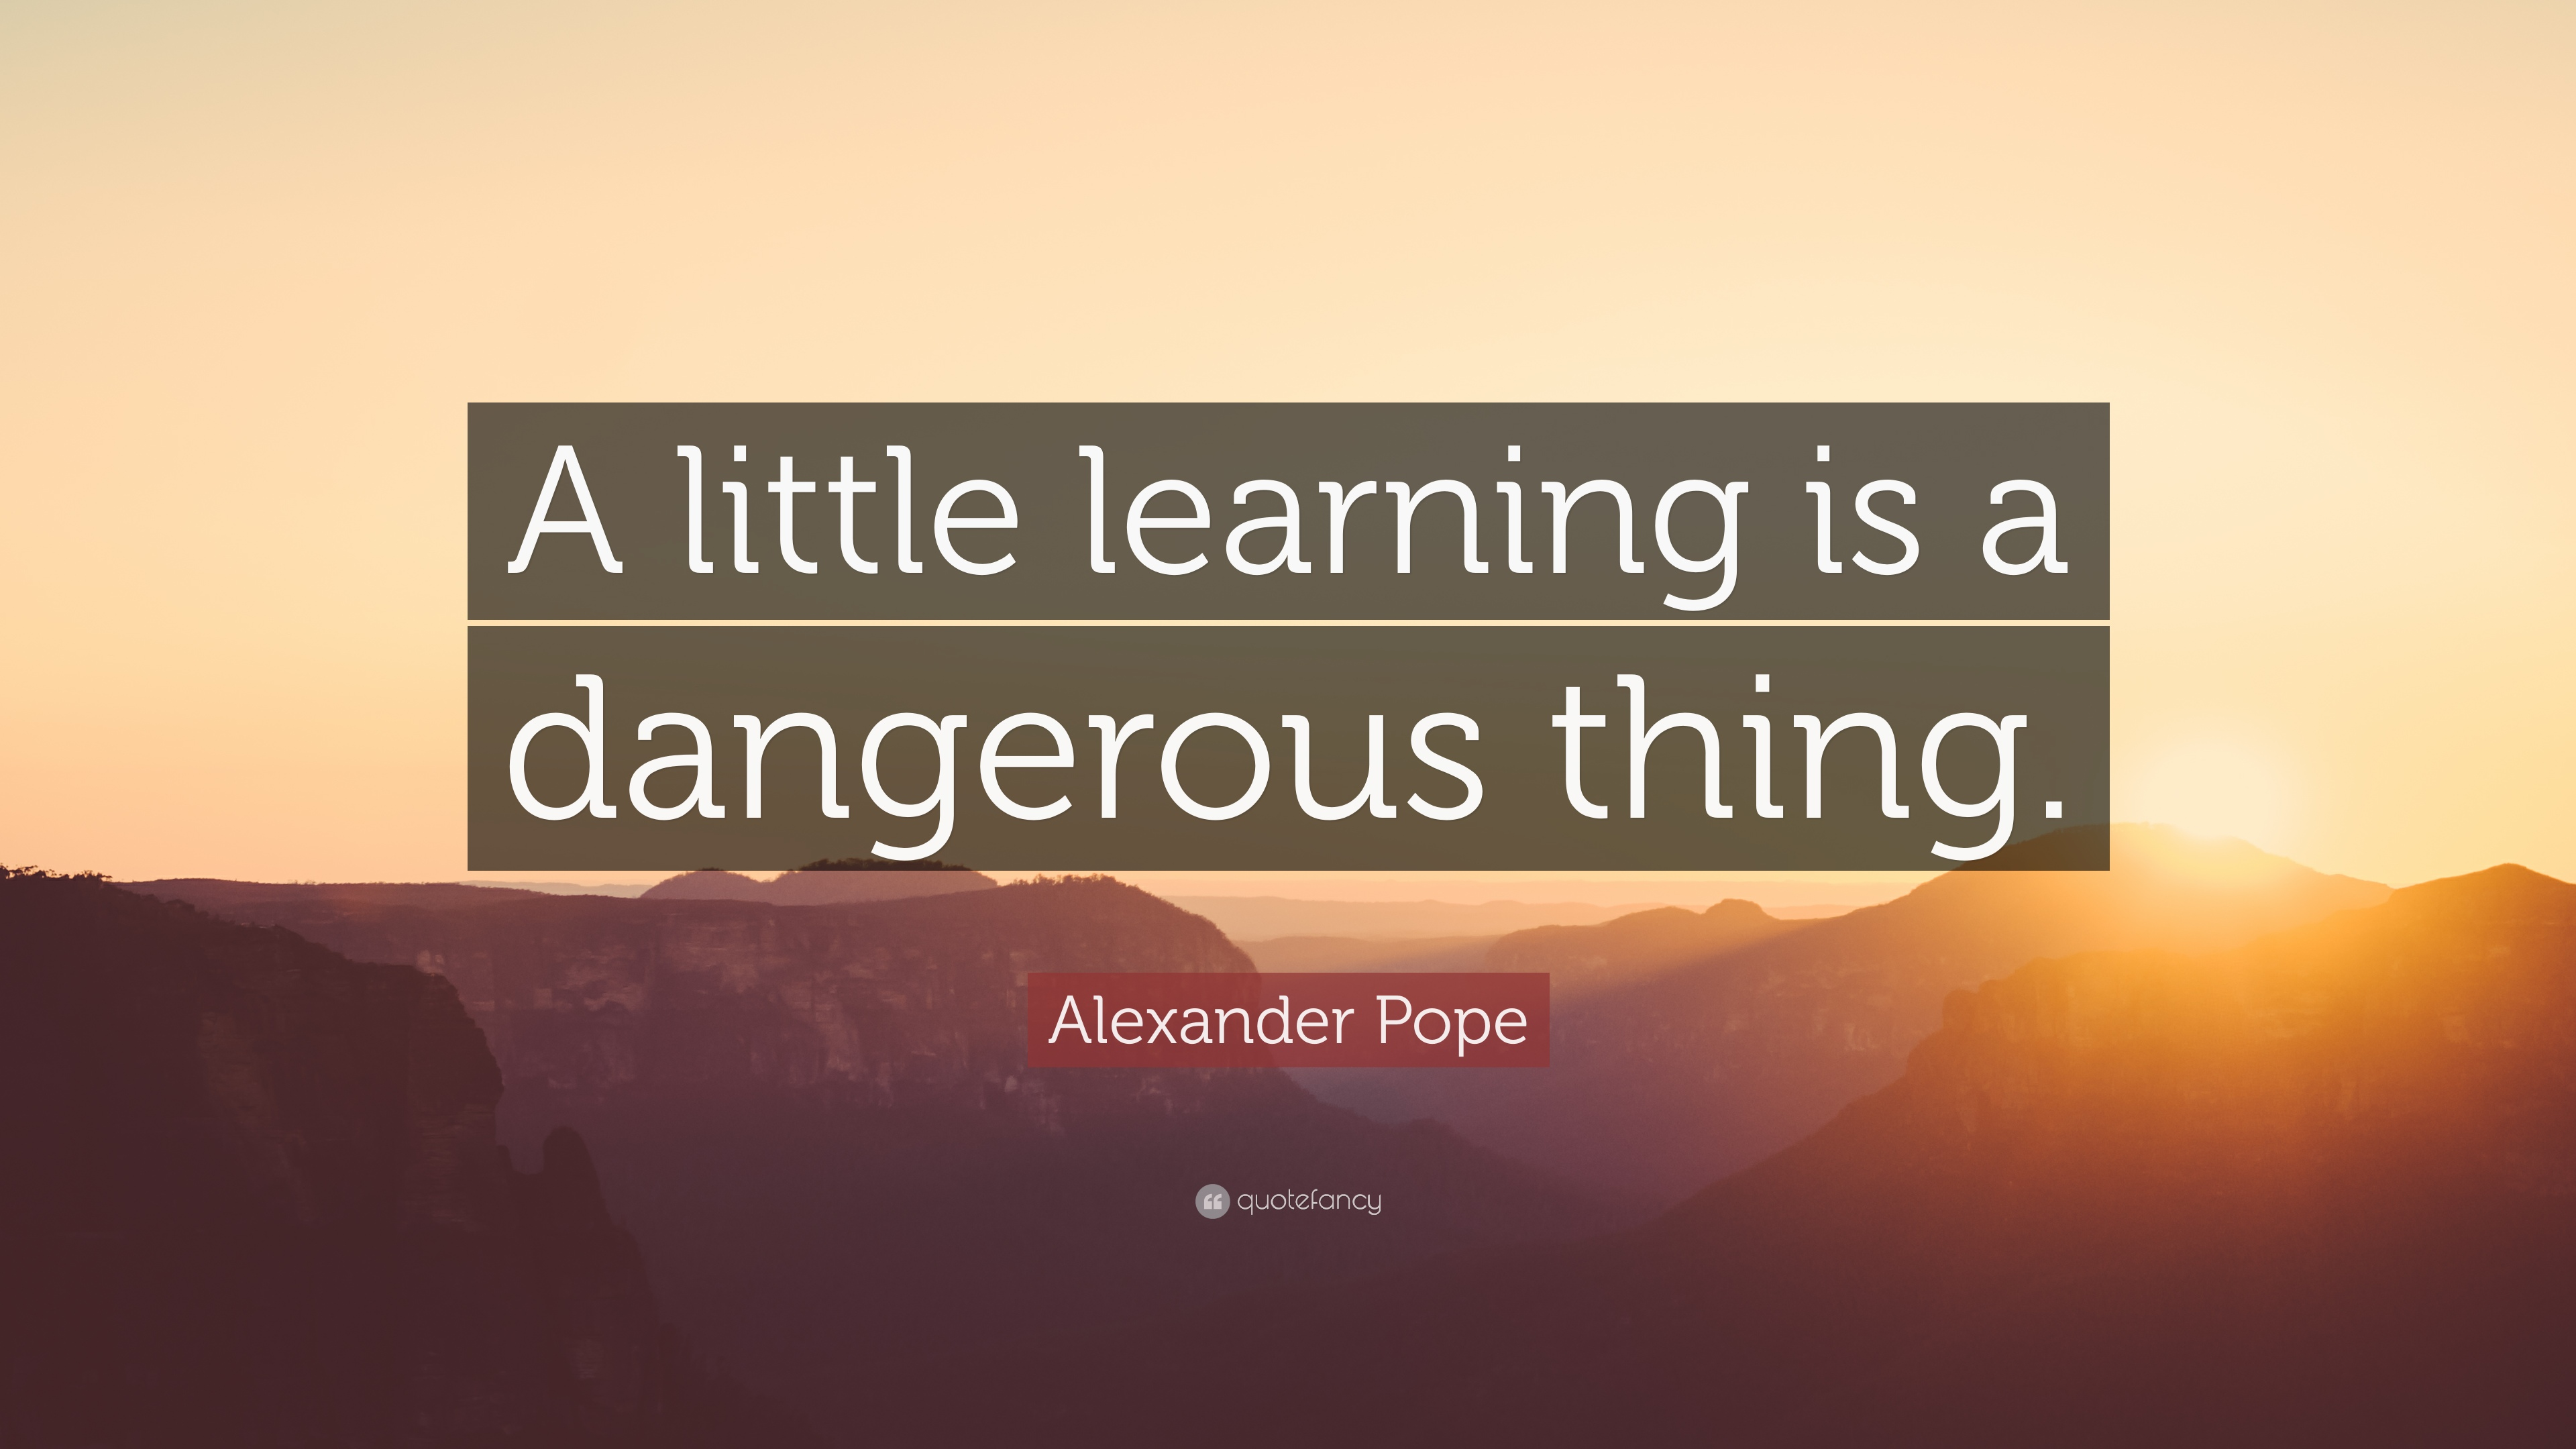 What Does A Little Knowledge is a Dangerous Thing Mean?